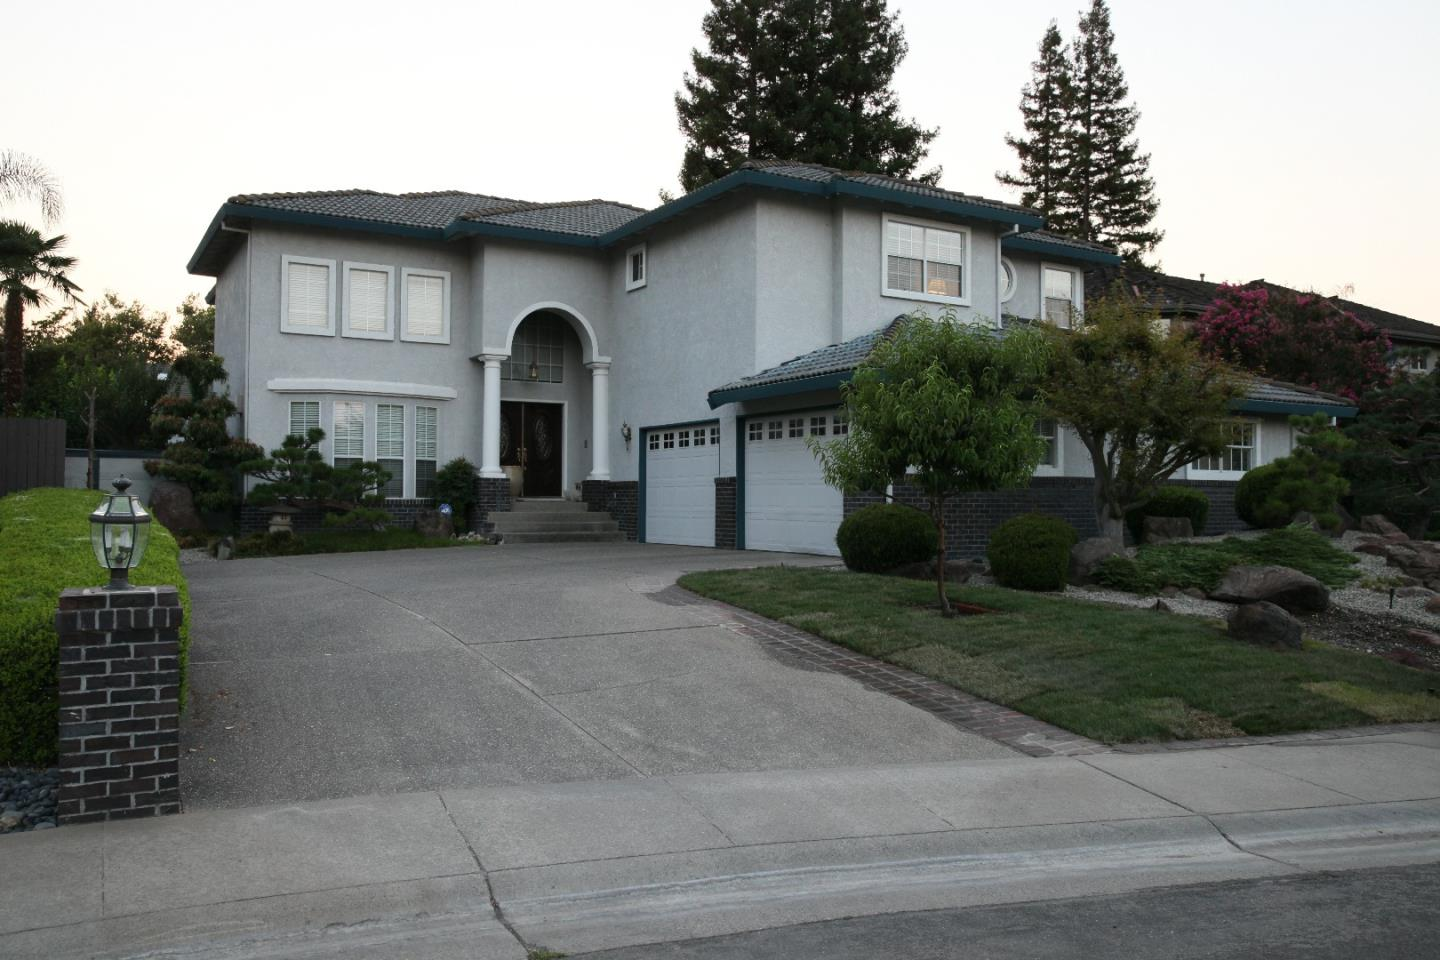 Casa Unifamiliar por un Venta en 7712 Silva Ranch Way 7712 Silva Ranch Way Sacramento, California 95831 Estados Unidos